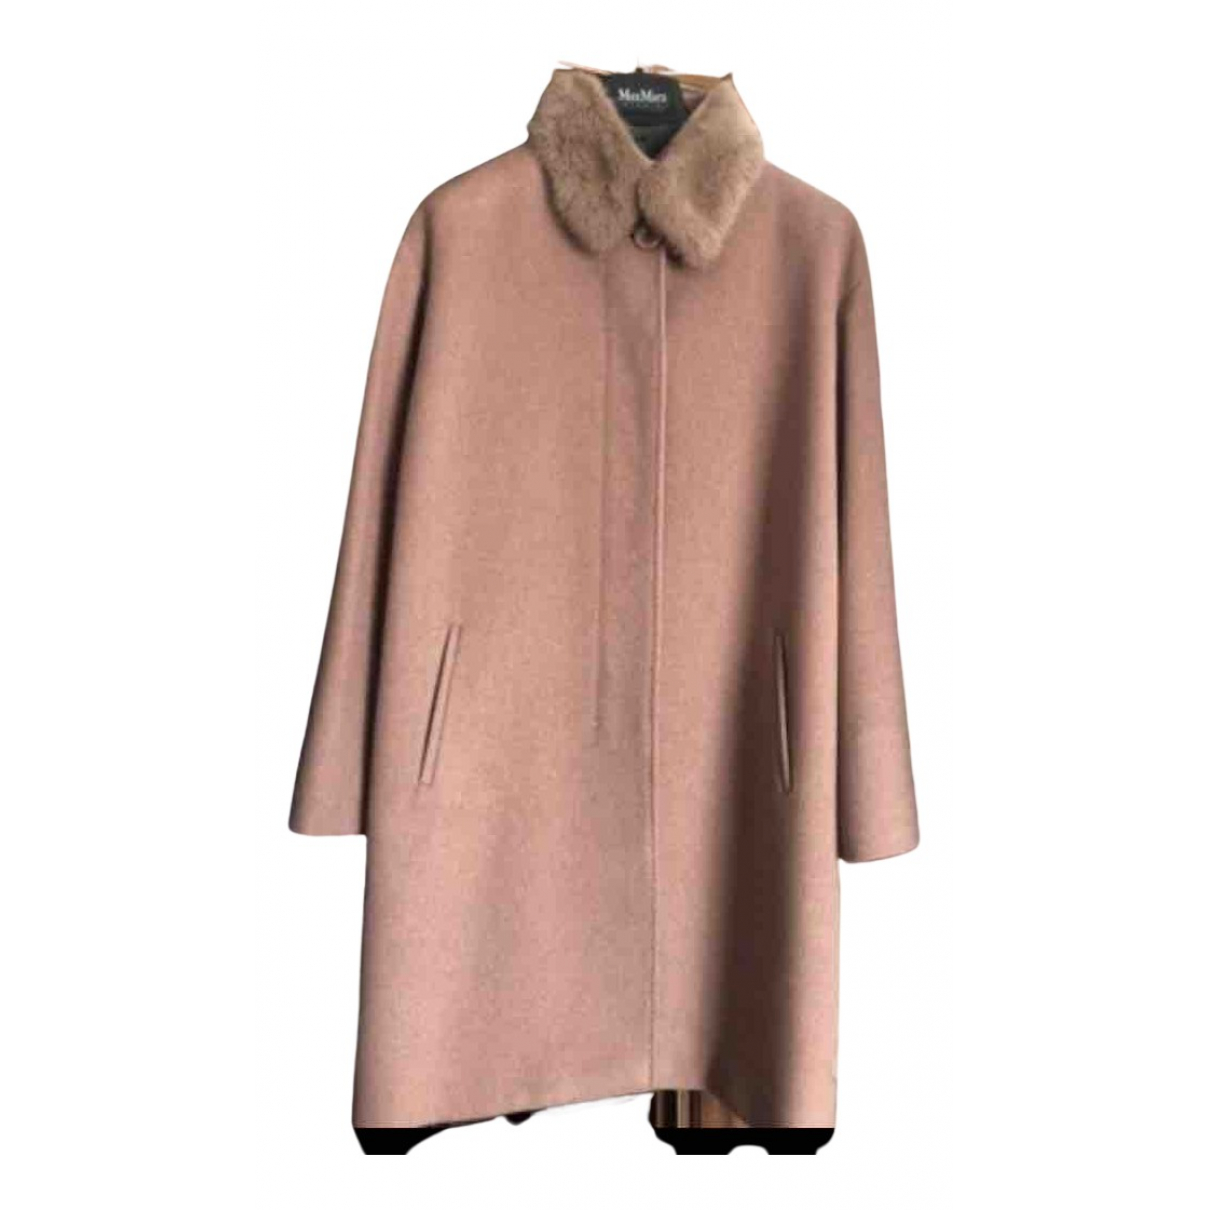 Max Mara Studio N Pink Wool coat for Women 46 IT